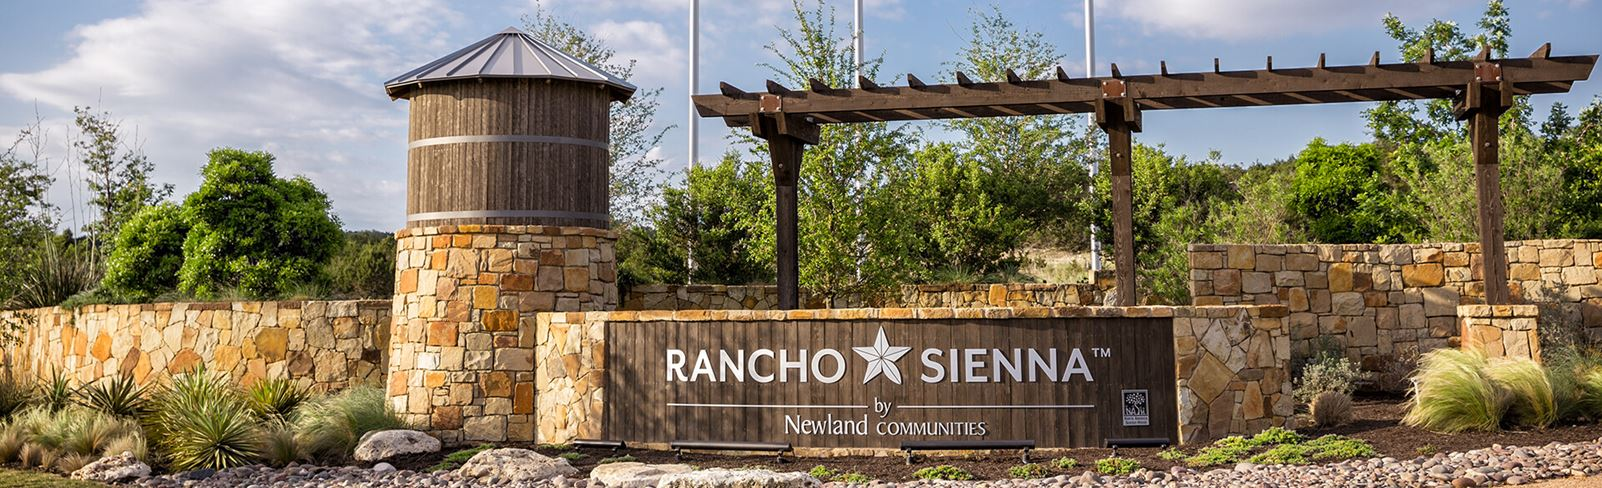 Rancho Sienna entrance sign